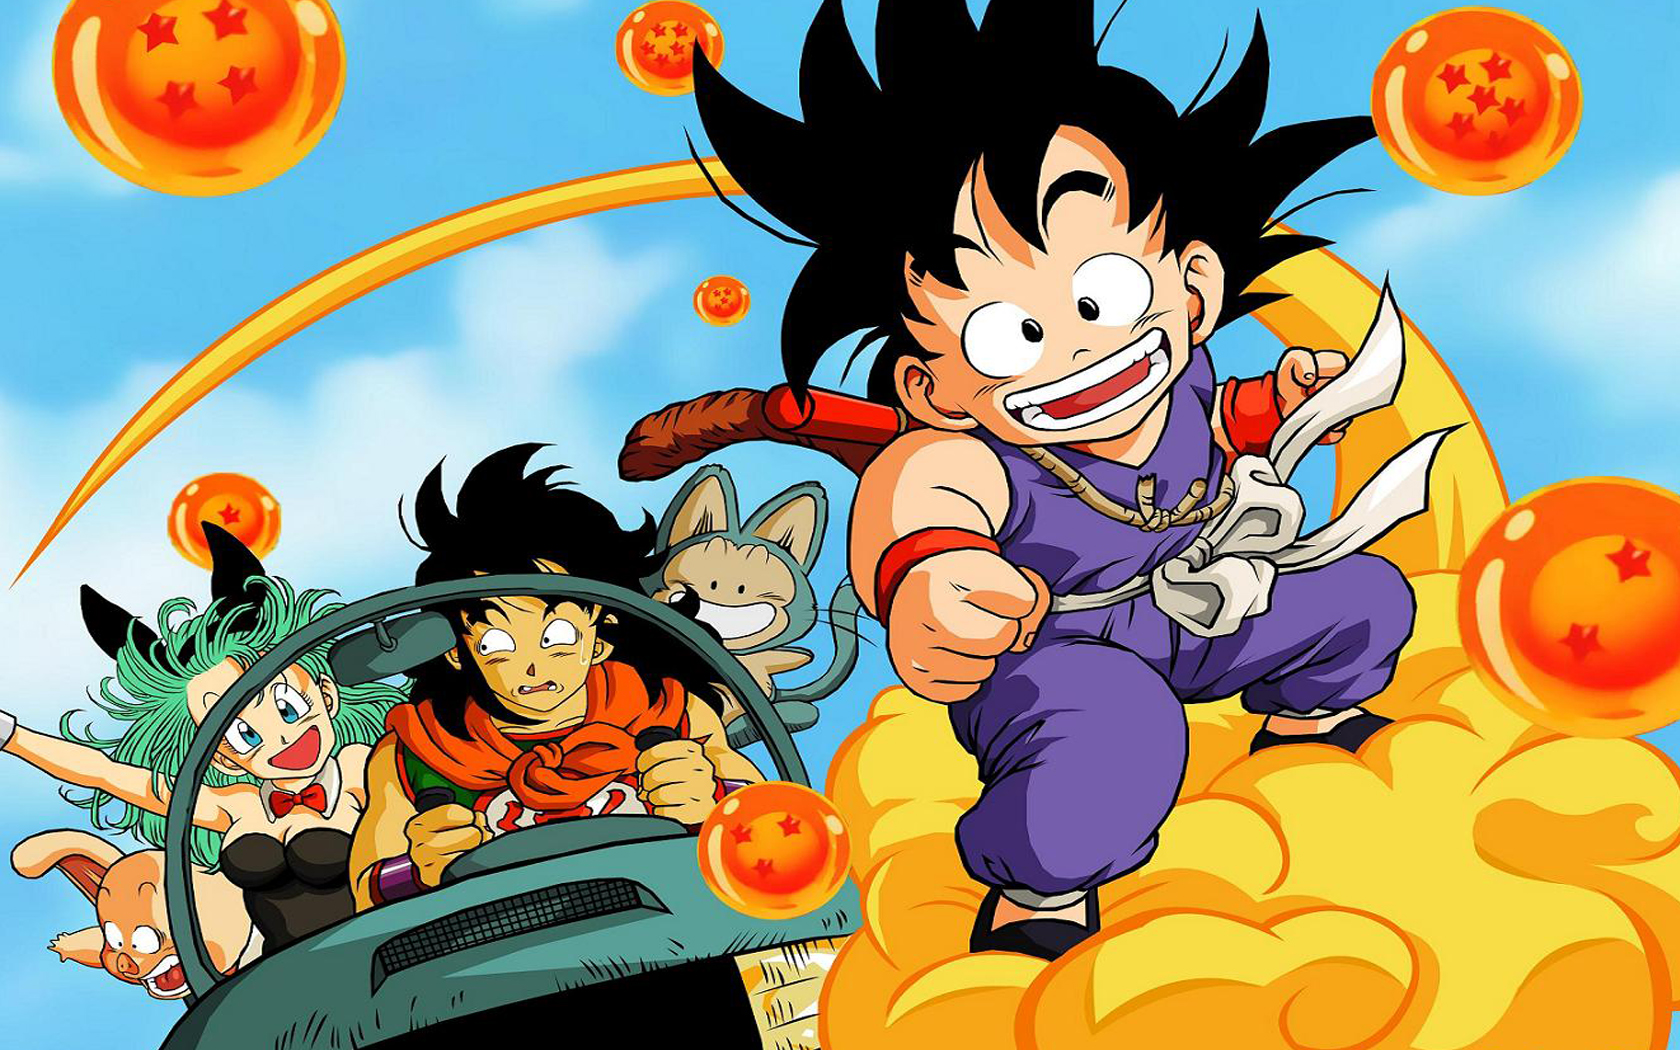 Review | Dragon Ball - Parte 1: O Arco de Goku